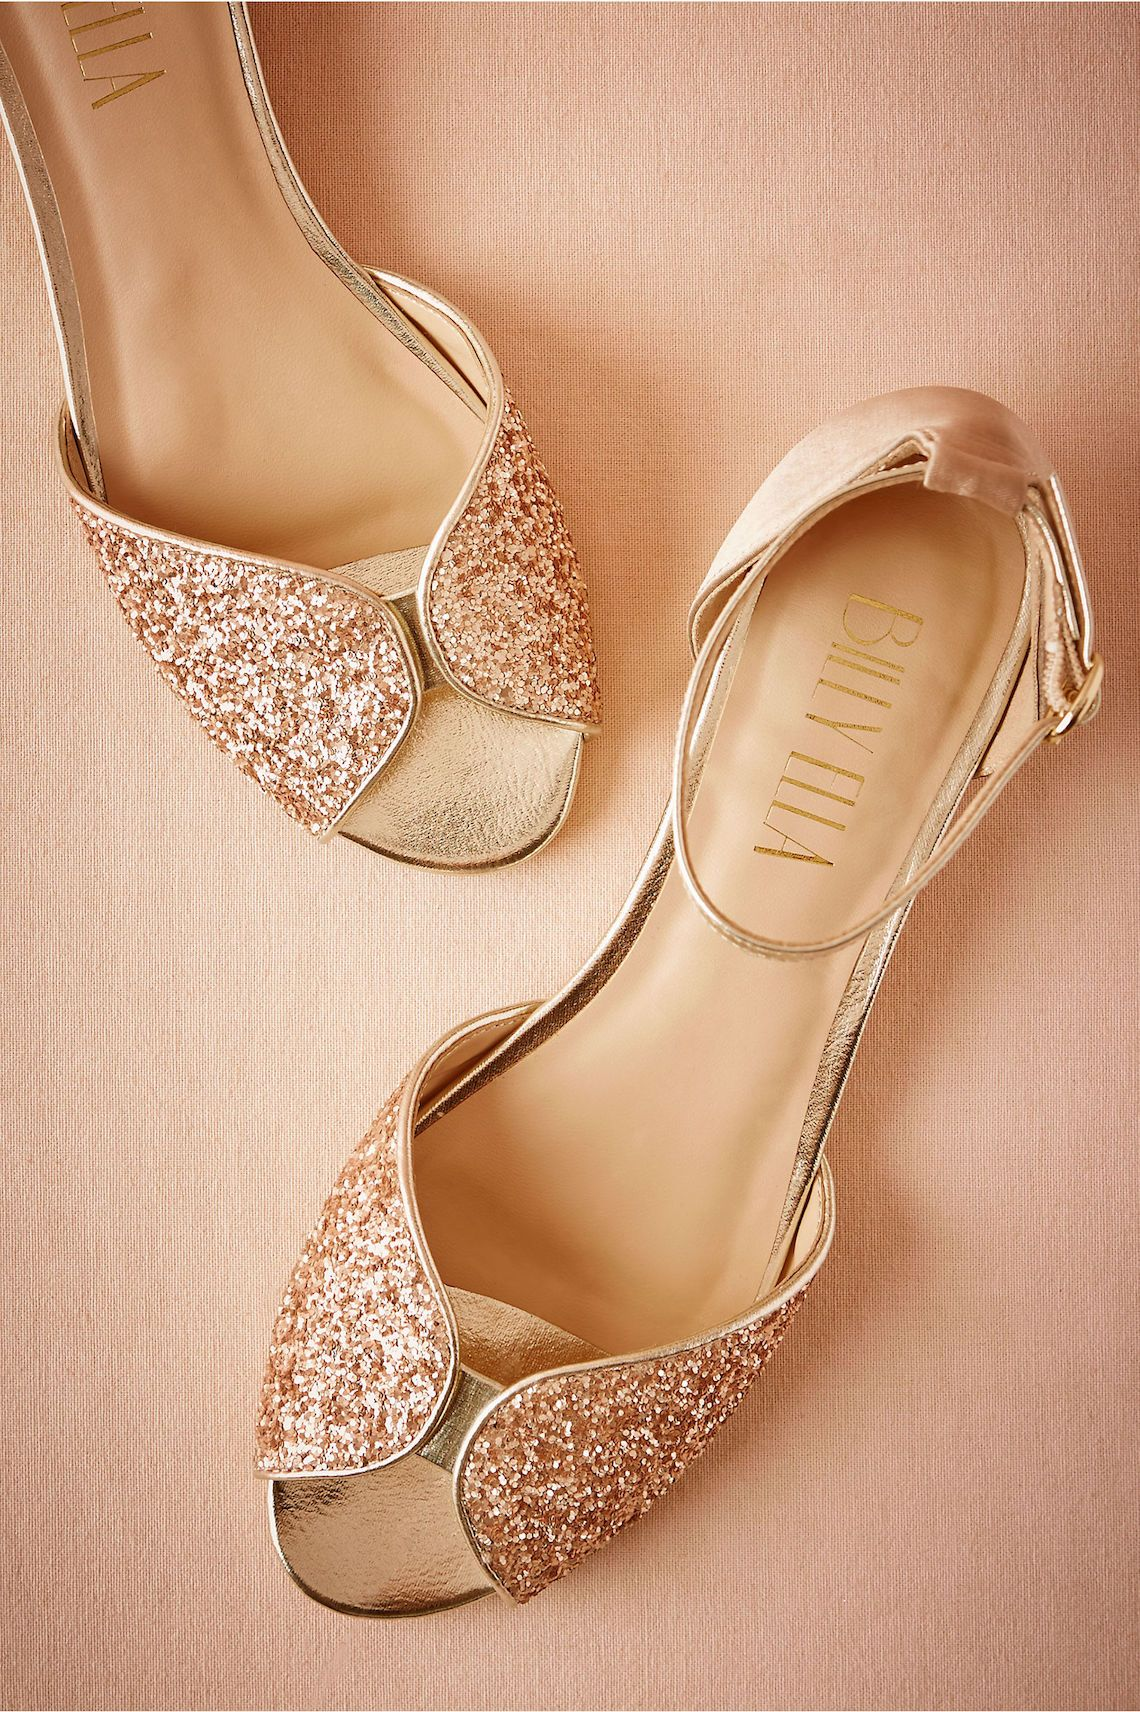 10 Flat Wedding Shoes That Are Just As Chic As Heels